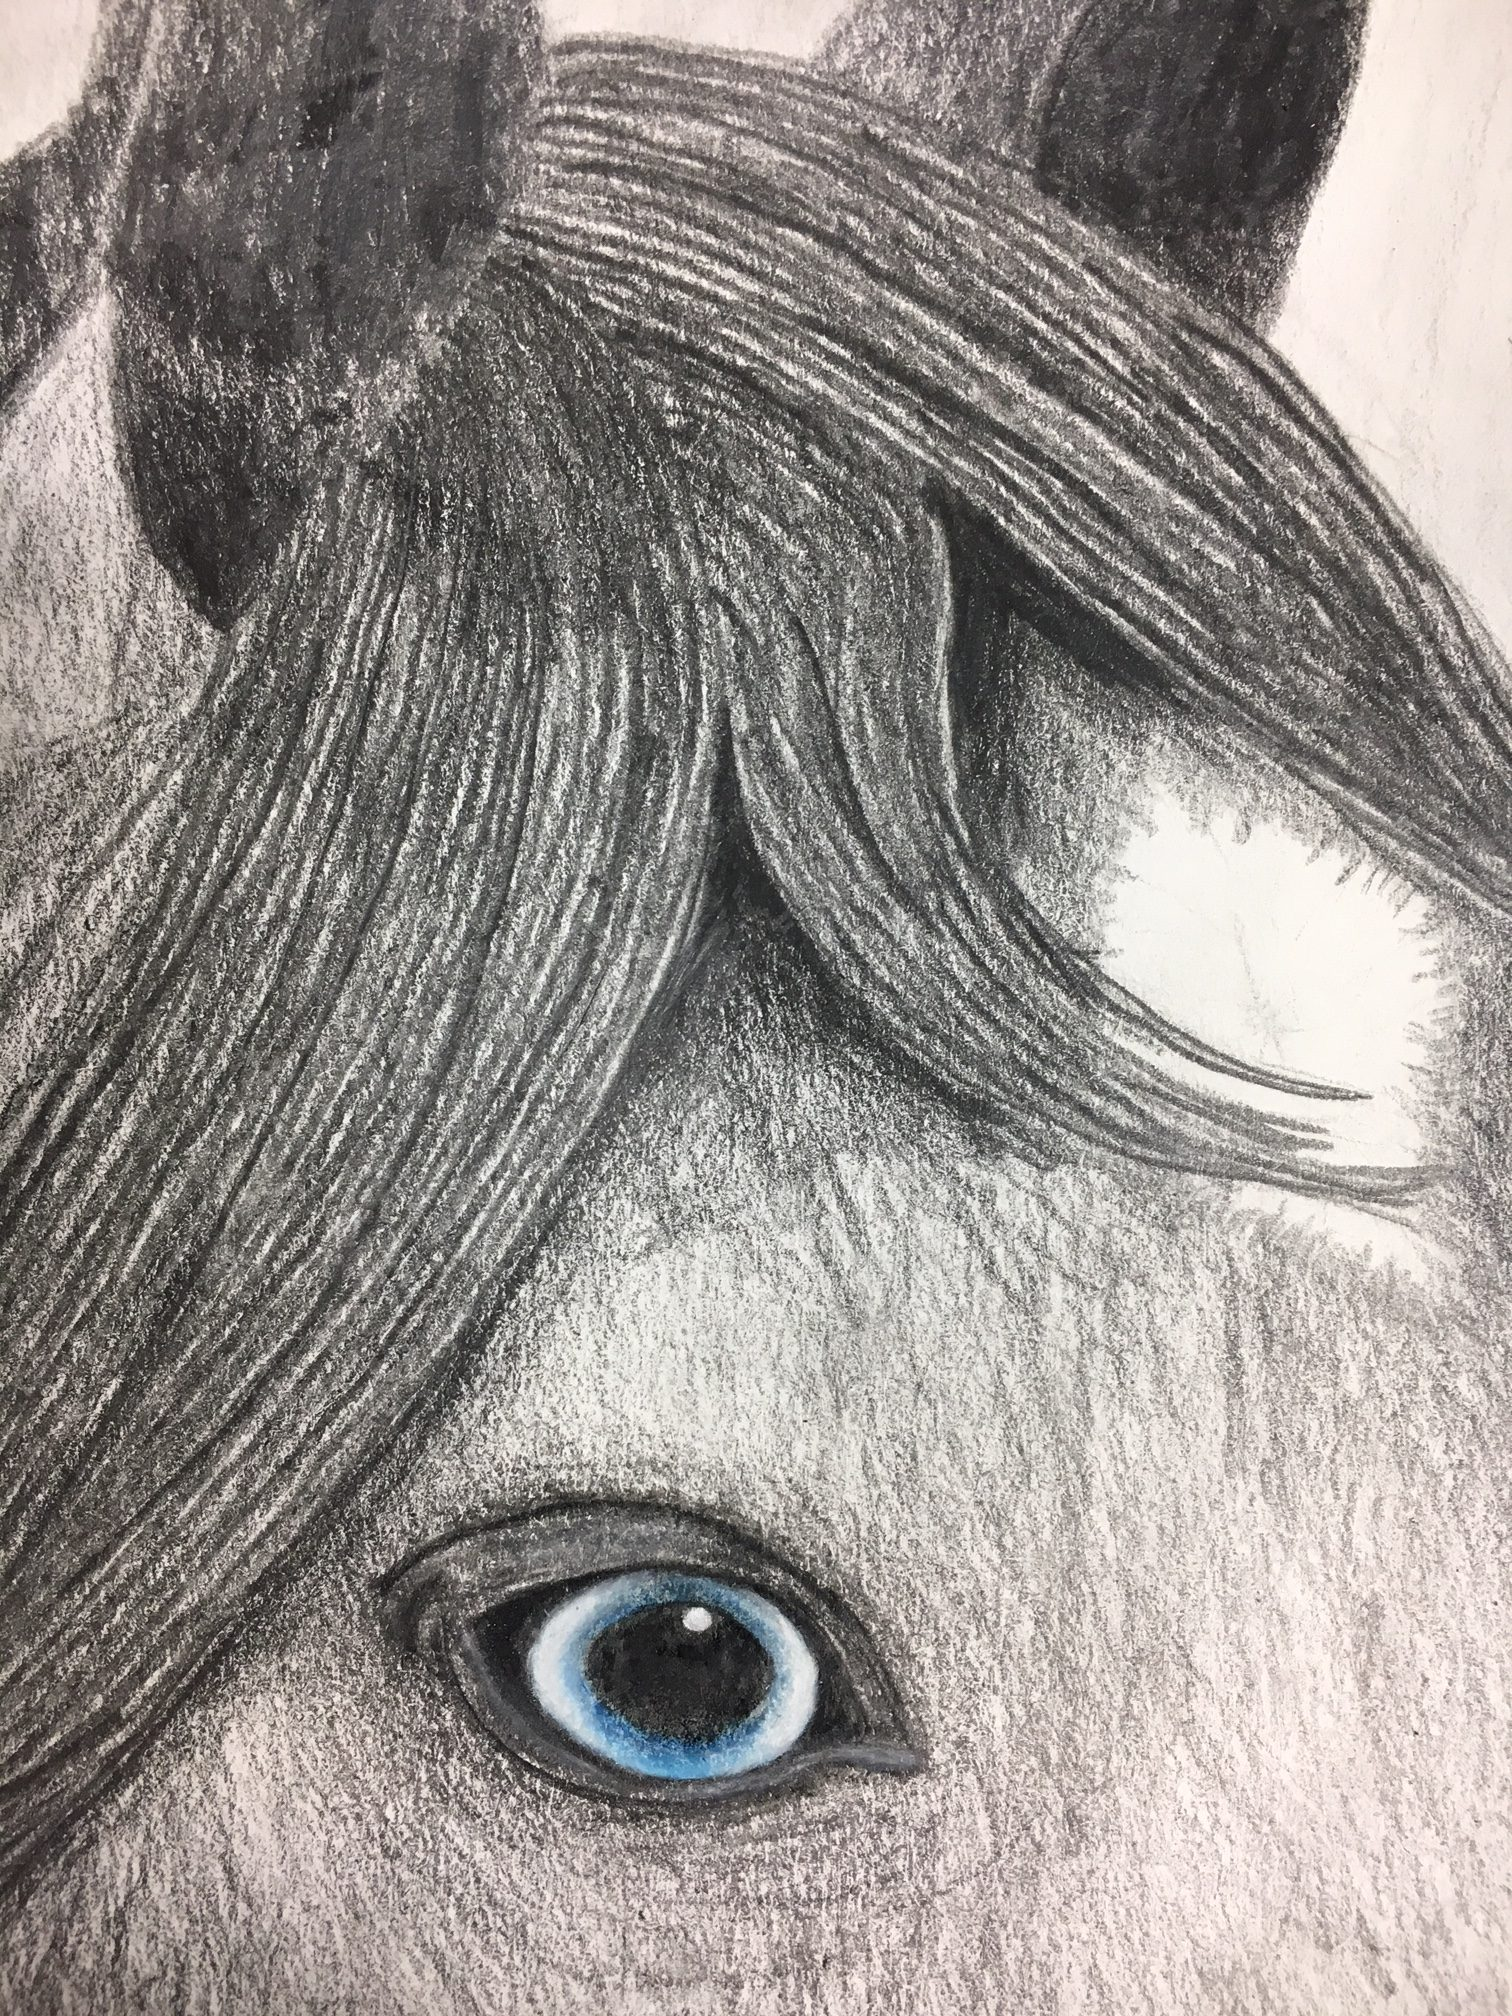 Emphasis animal eyes graphite and colored pencil drawing create